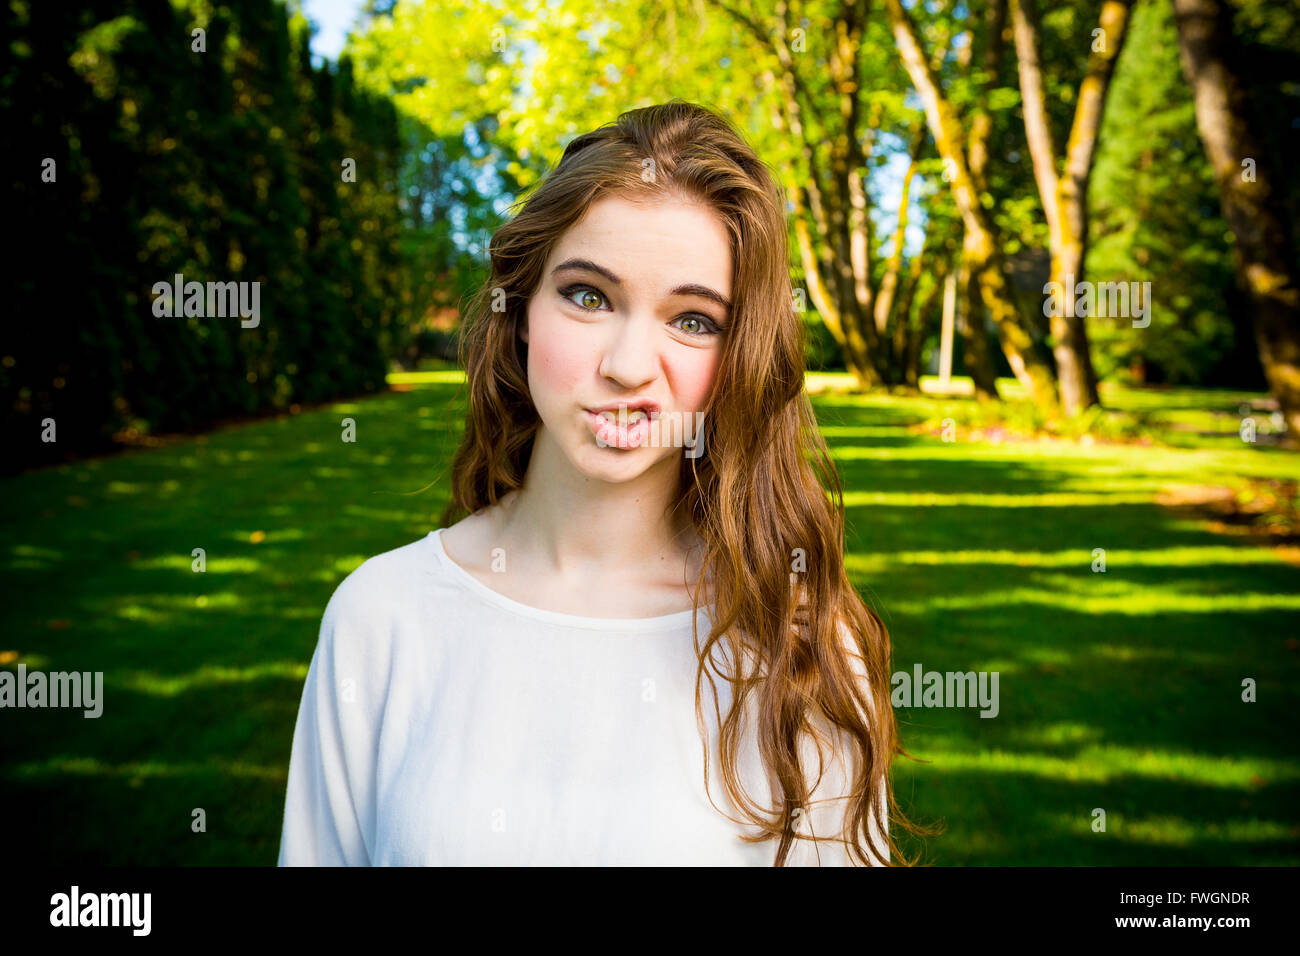 A beautiful young girl poses for a fashion style portrait outdoors at a park with natural lighting. - Stock Image